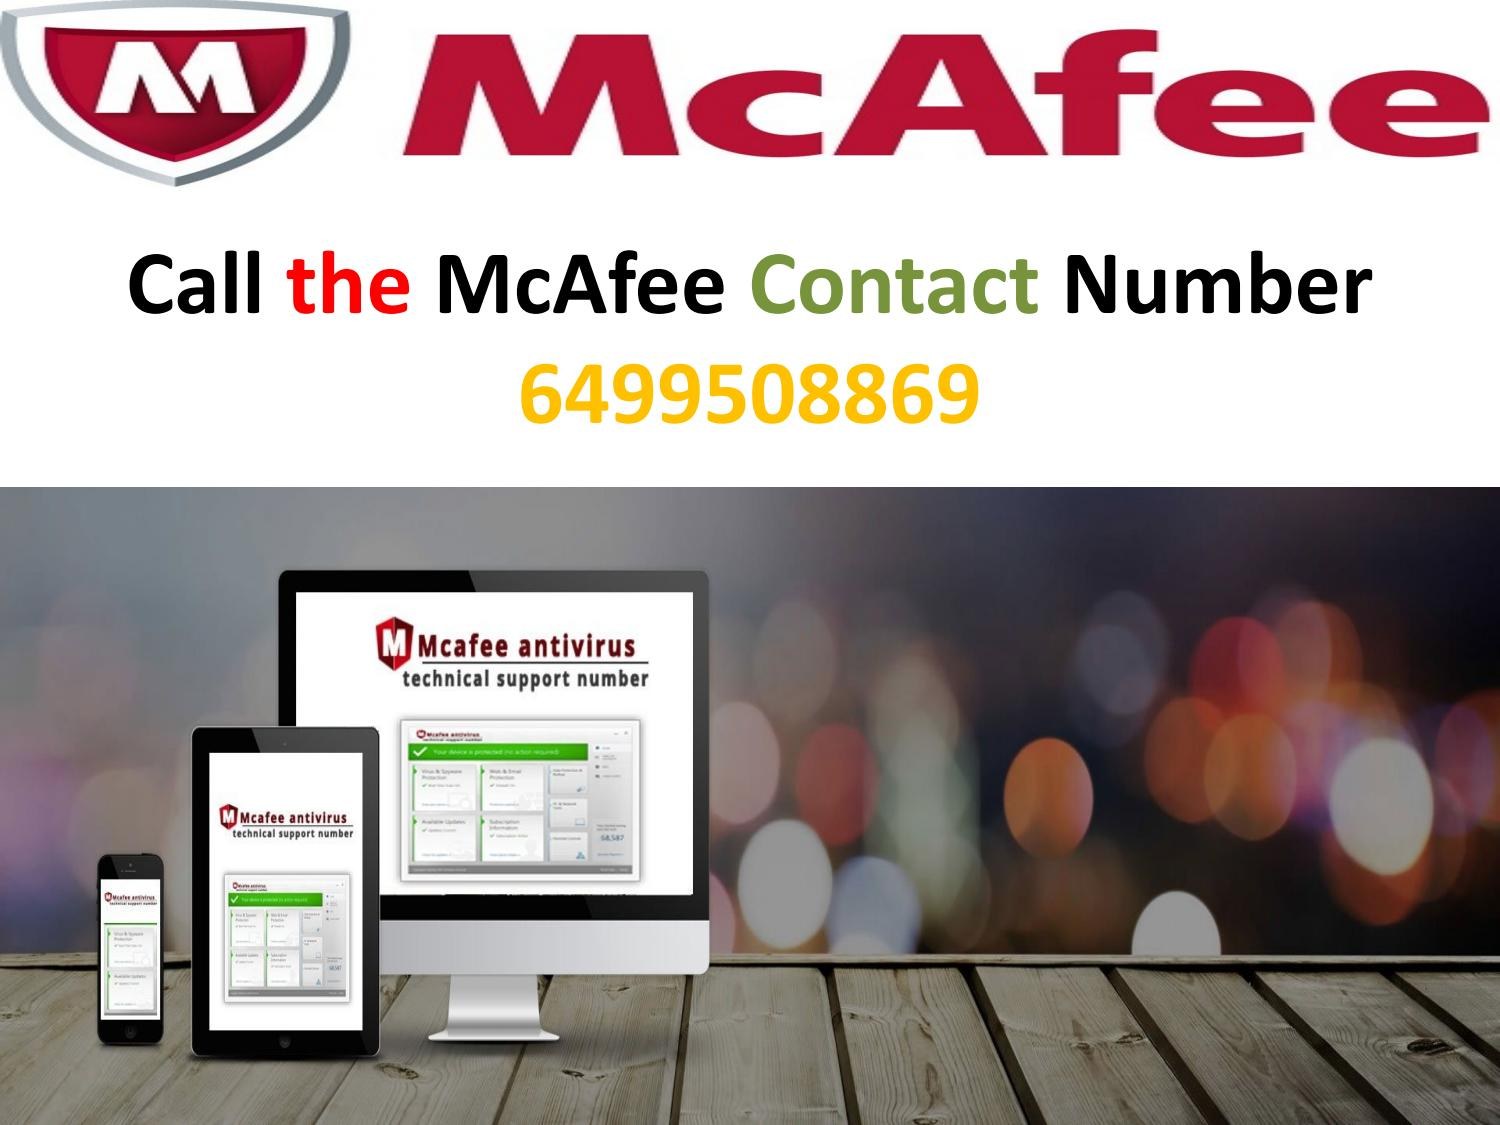 Dial the McAfee Customer Support Number 6499508869 and provide best  solution by Lorain Ventura - issuu